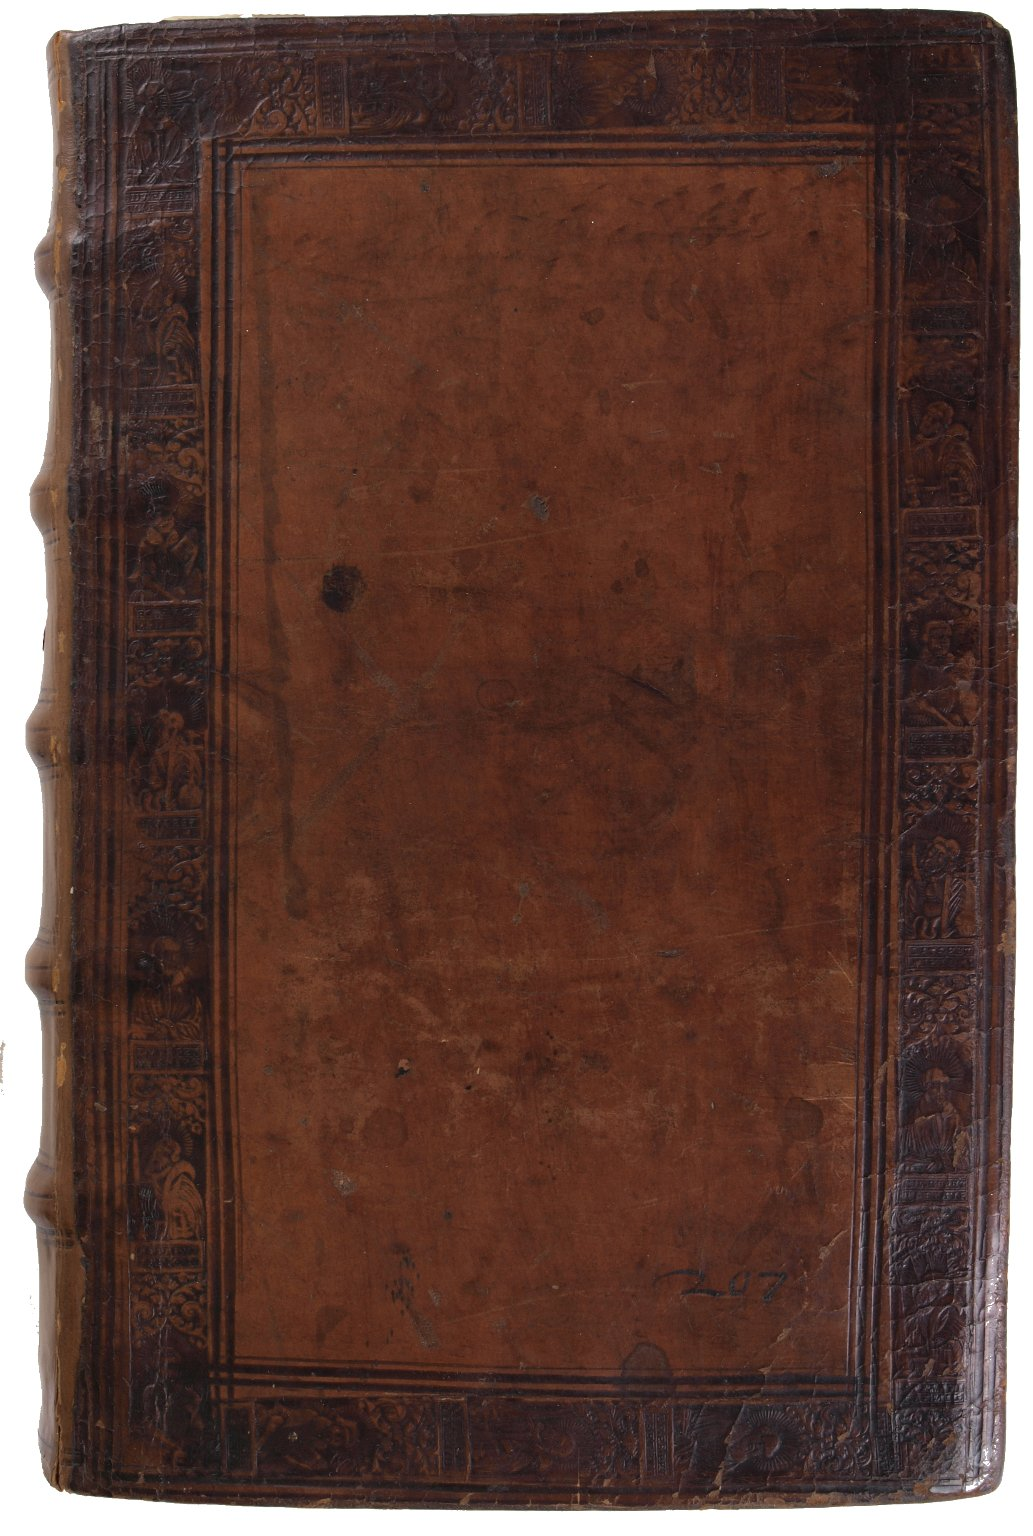 Front cover, STC 13250.